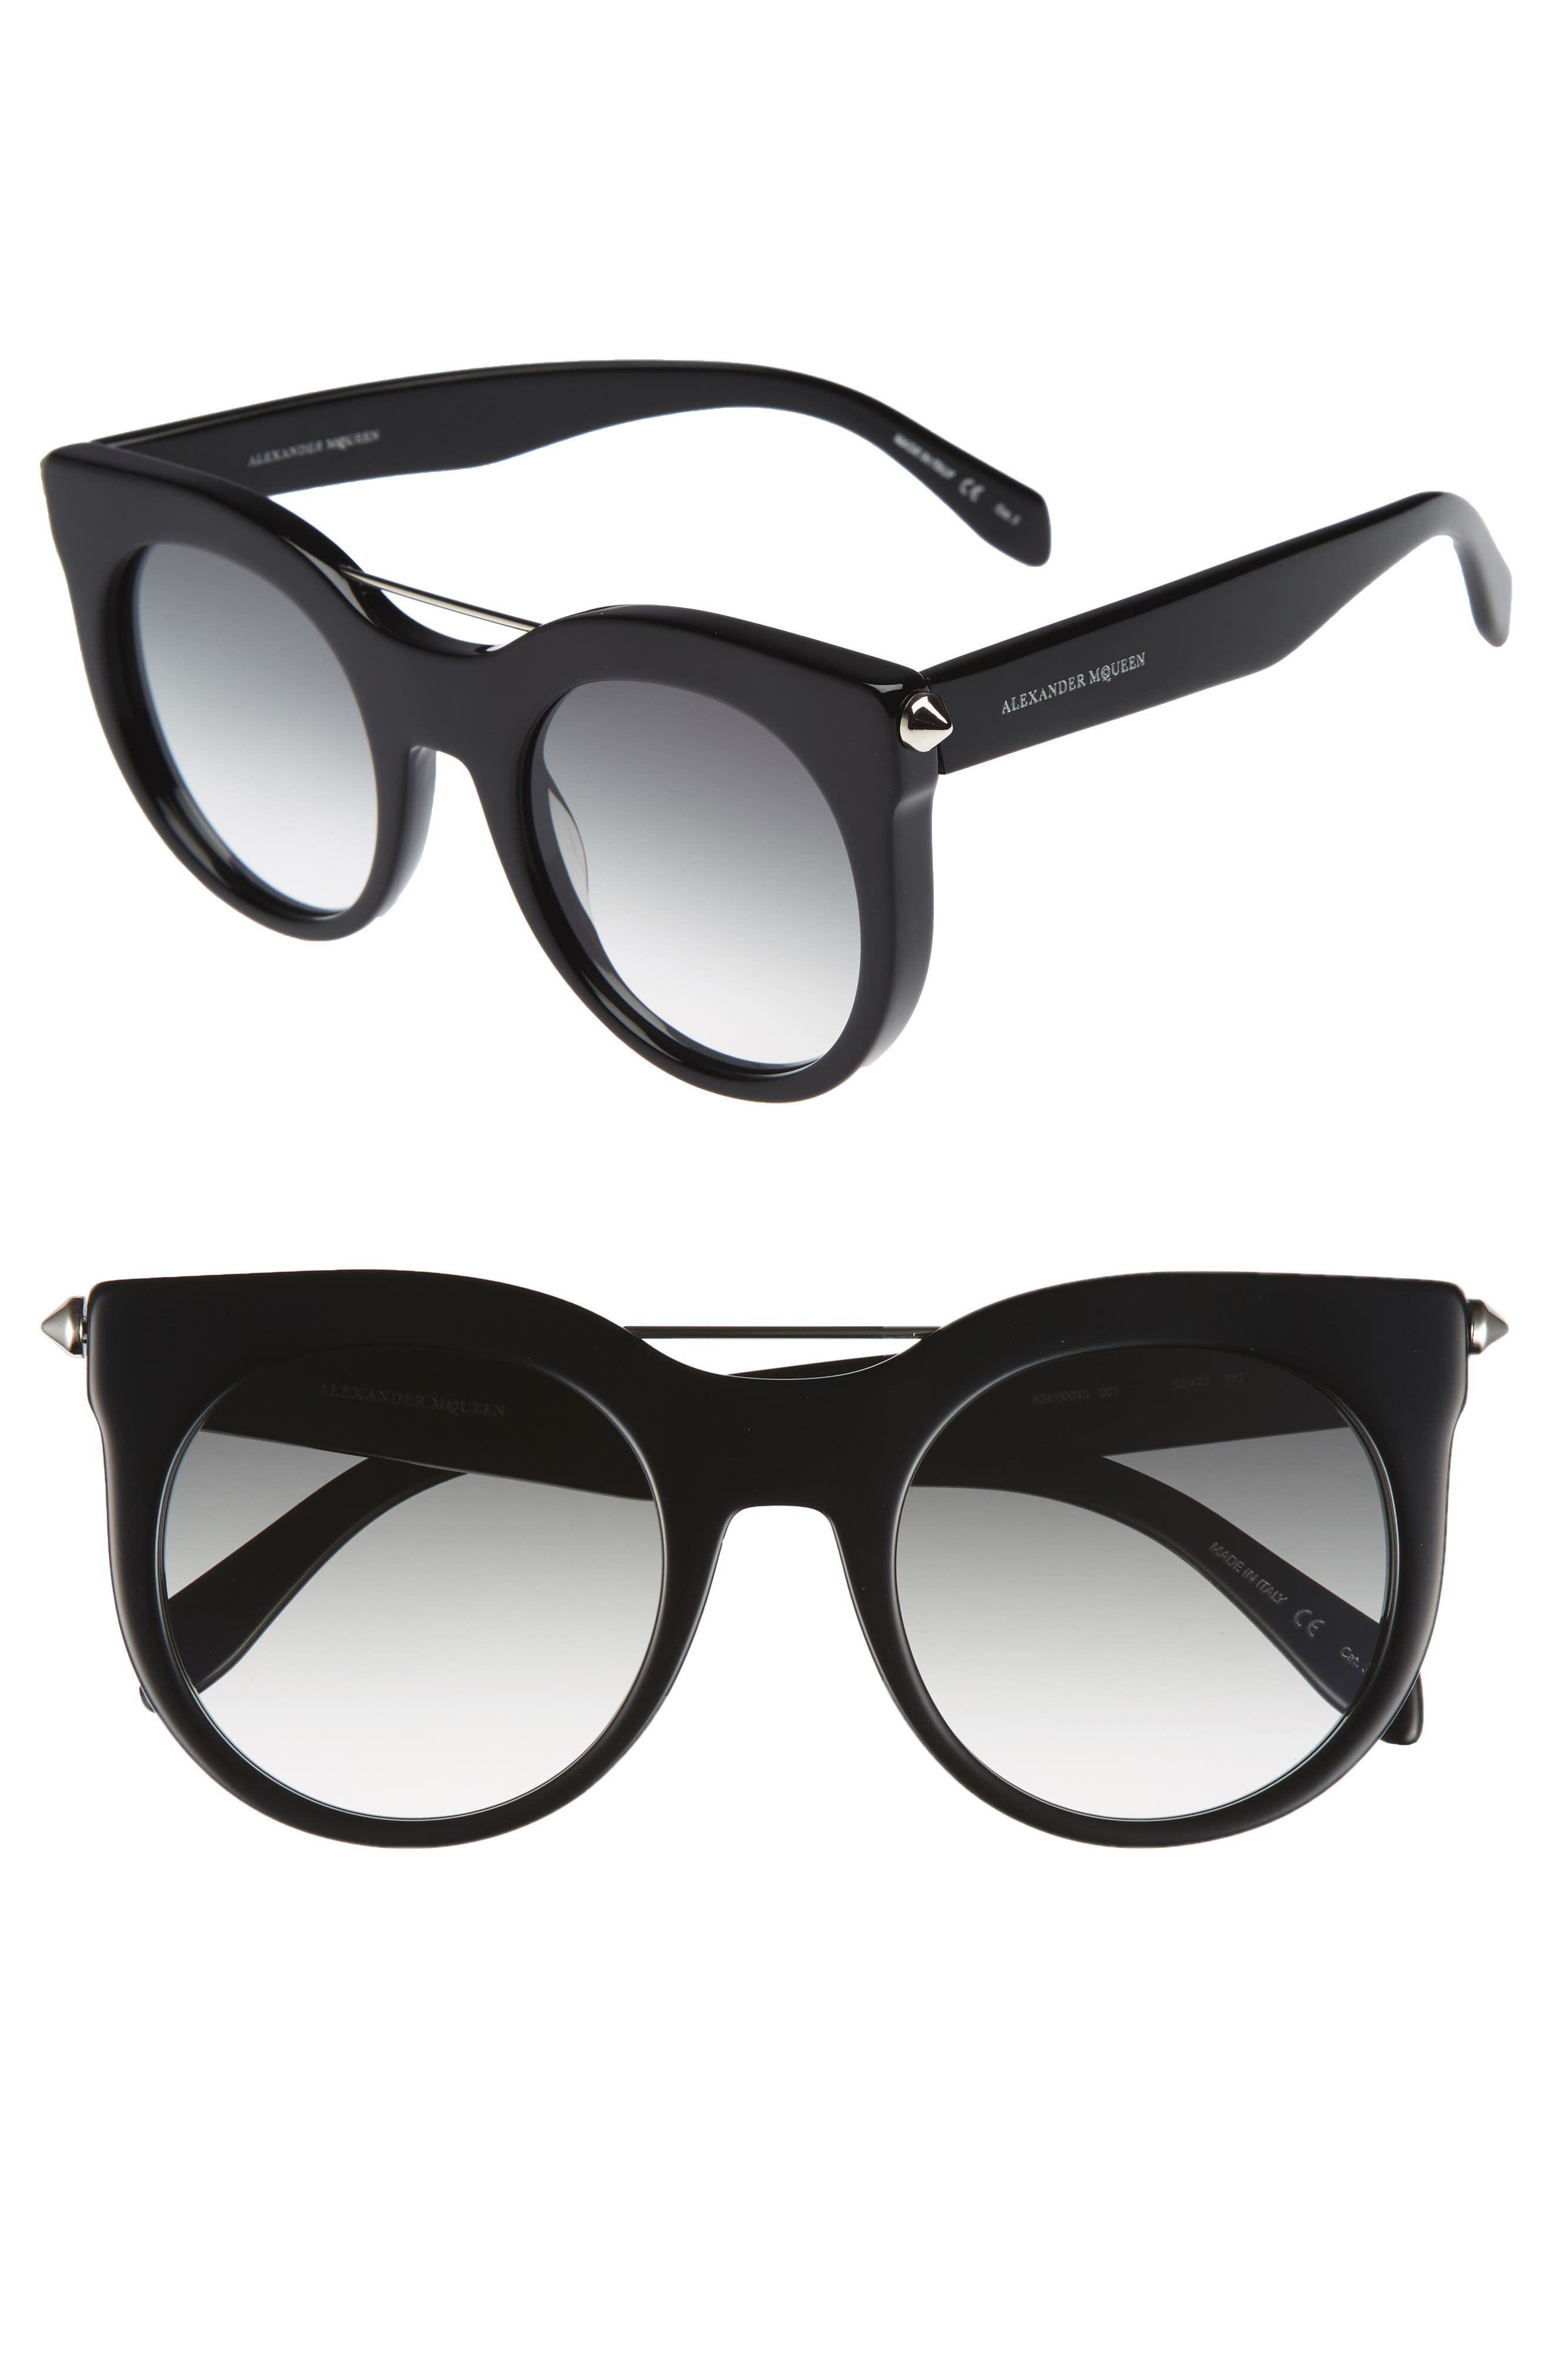 Alexander McQueen 52mm Cat Eye Sunglasses